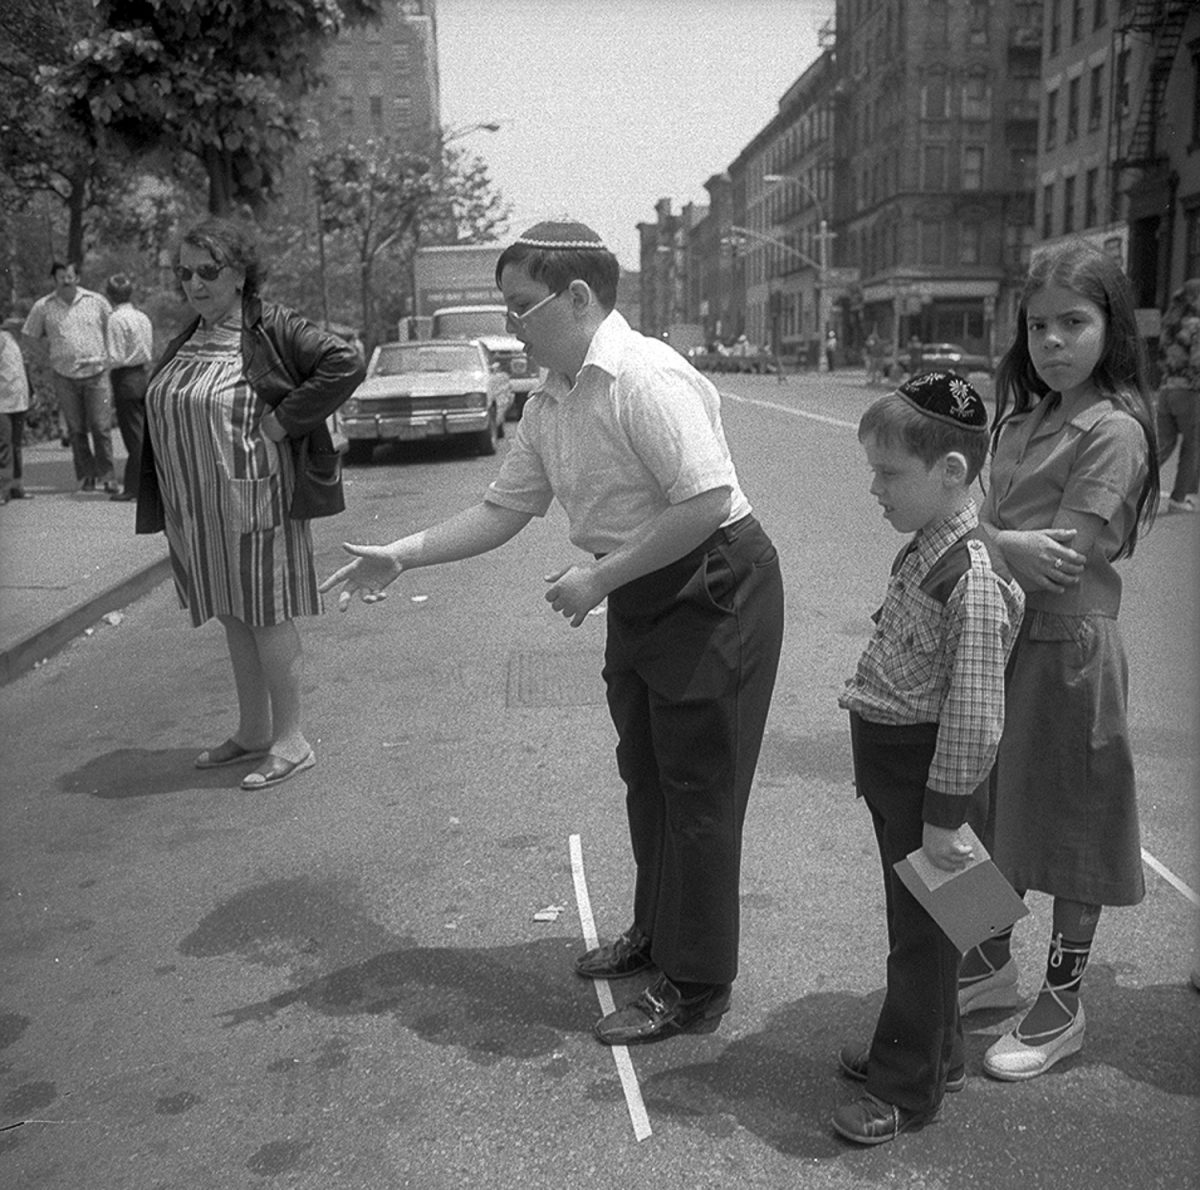 Ring Toss at Lower East Side Street Festival, New York - June 1978